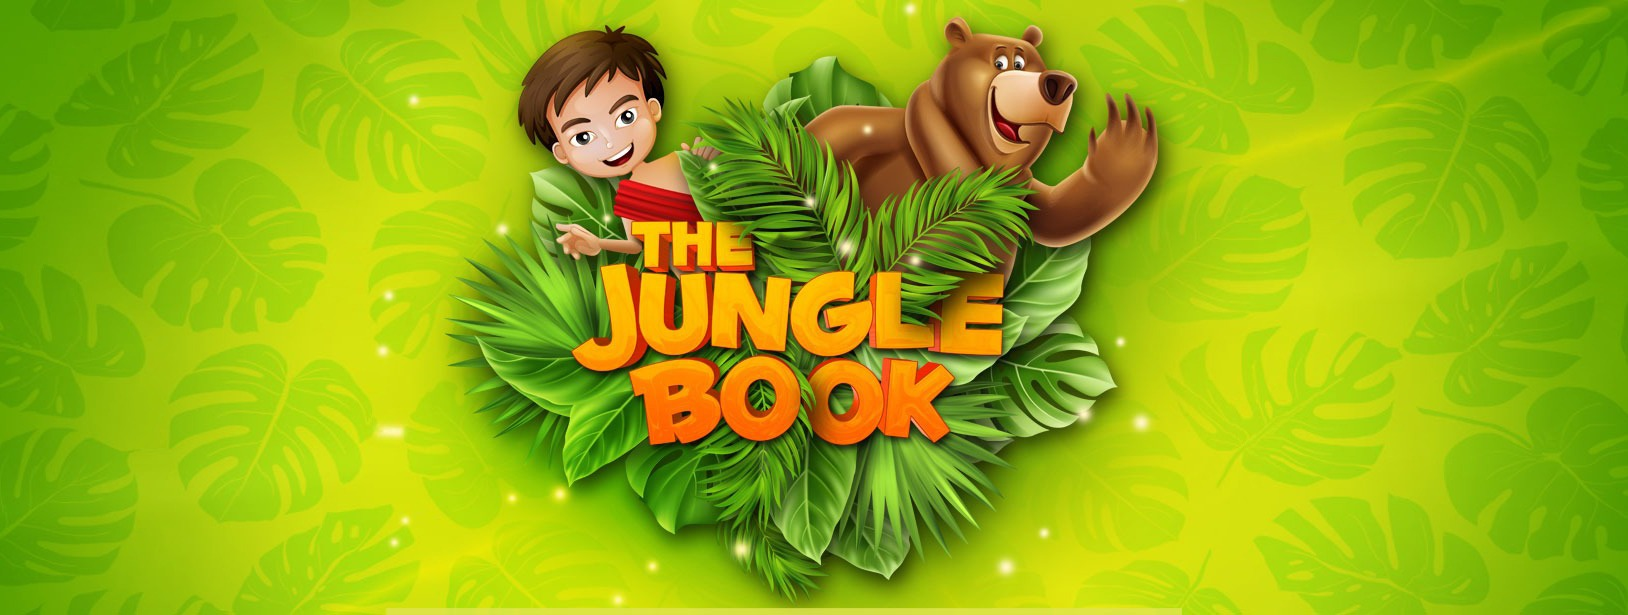 The Jungle Book at Madinat Theatre - Coming Soon in UAE